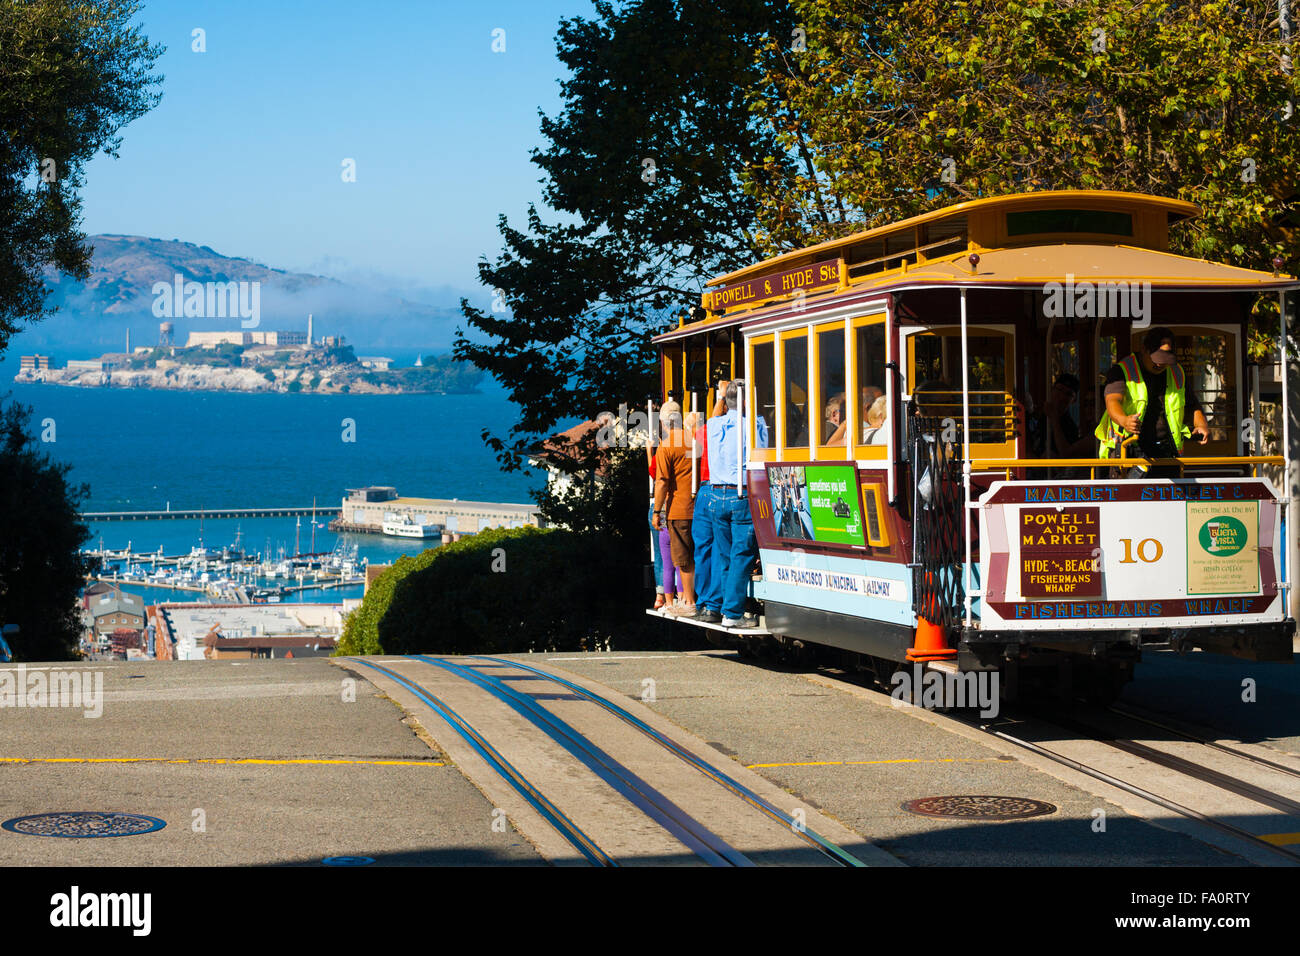 Powell Hyde cable car, an iconic tourist attraction, descending a steep hill peak overlooking Alcatraz prison island - Stock Image